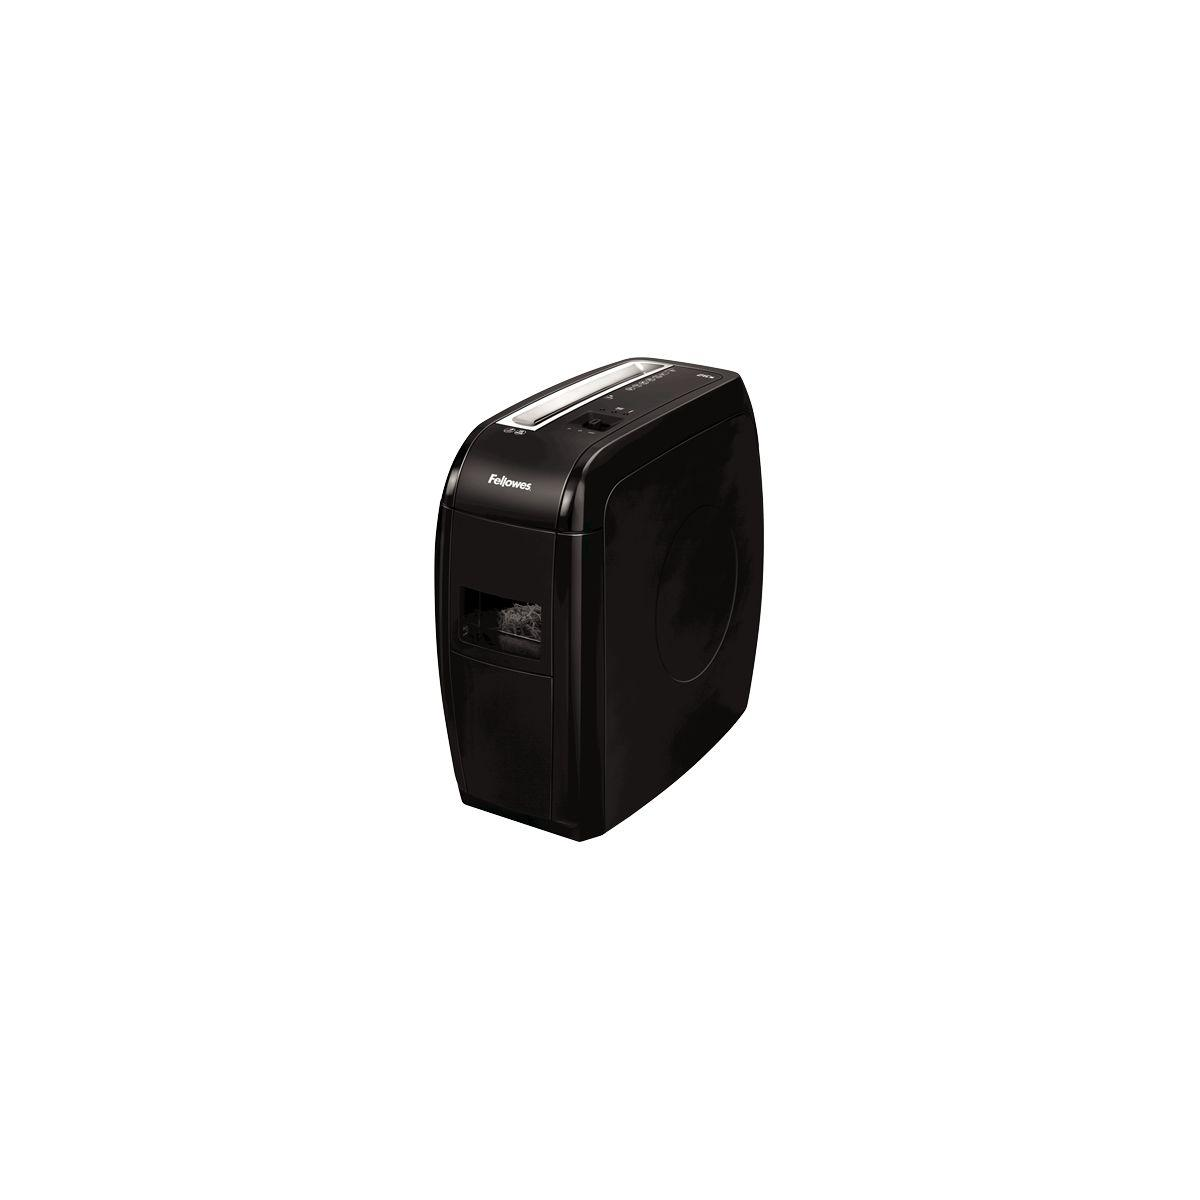 Destructeur fellowes 21cs - 2% de remise imm�diate avec le code : deal2